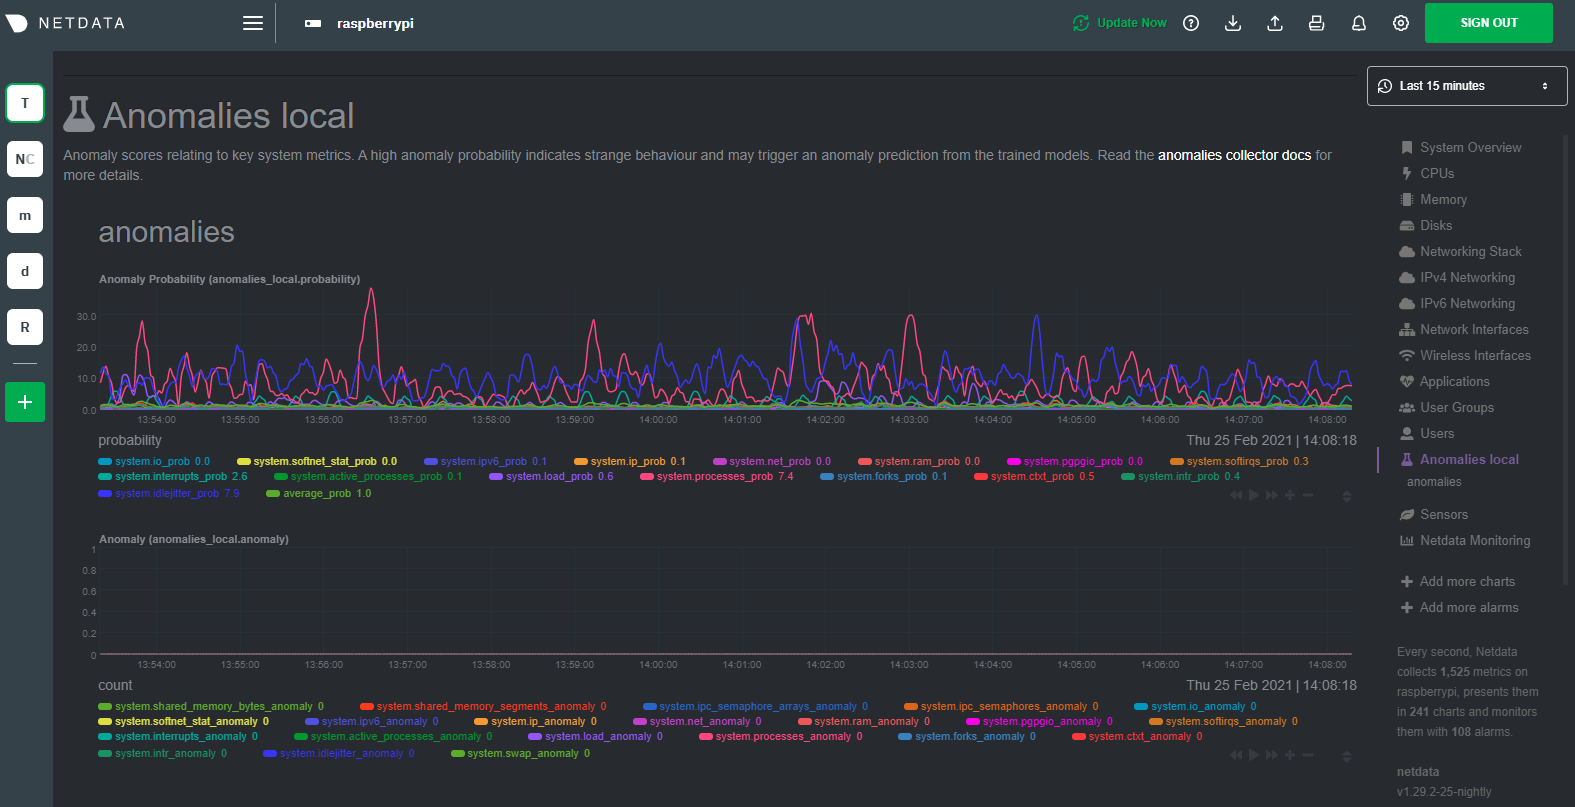 Anomaly detection on the Raspberry Pi